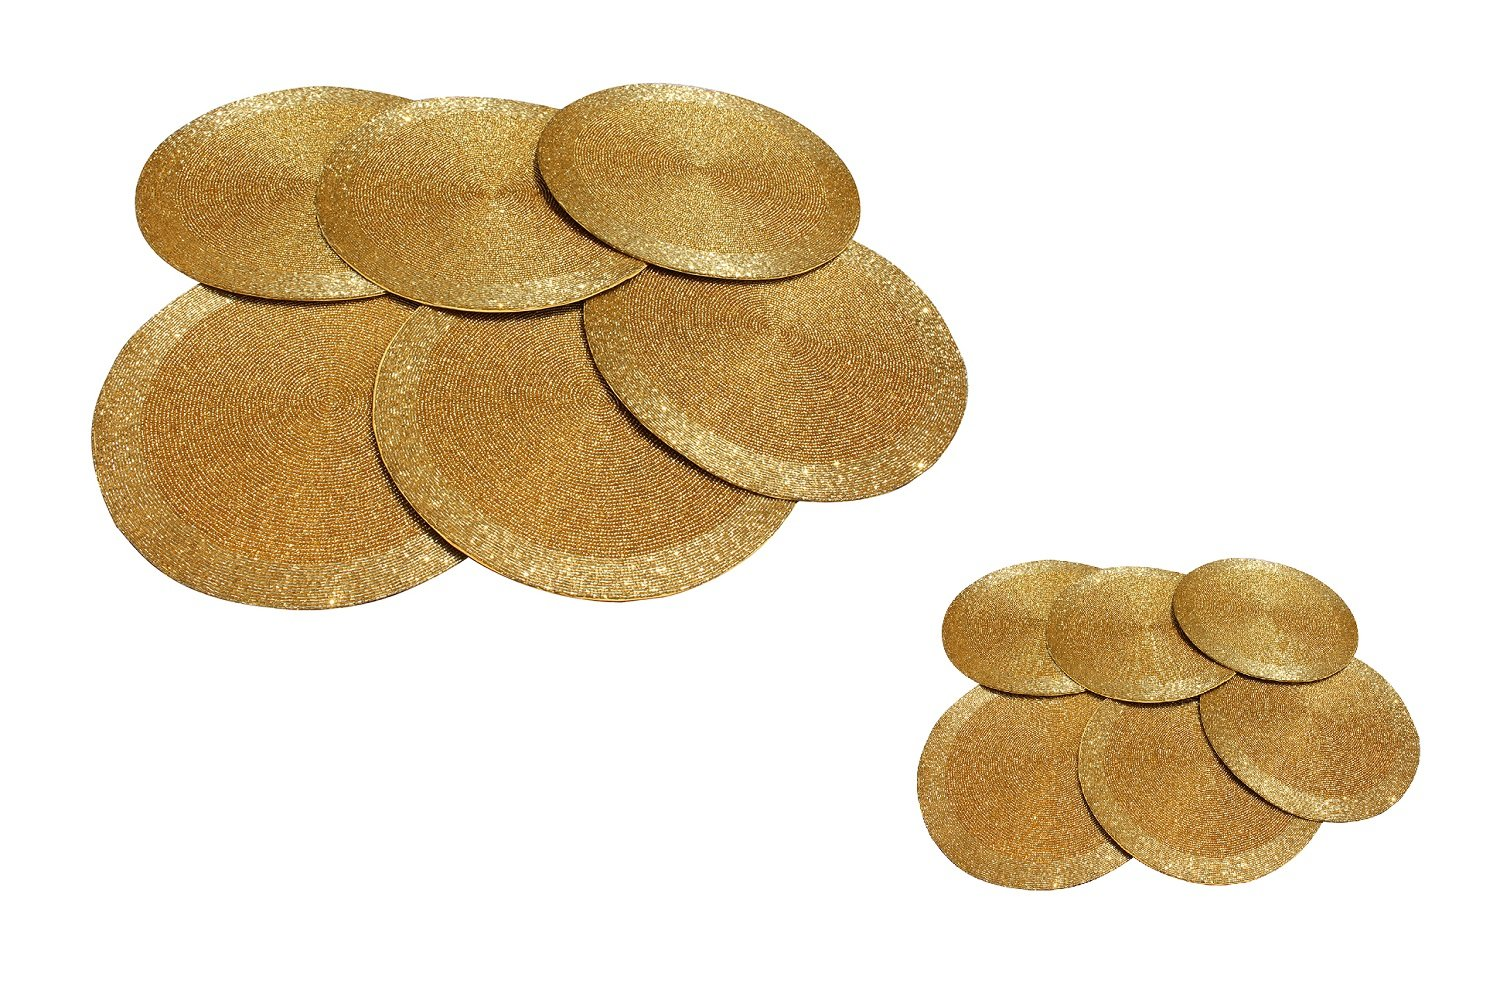 Gold Finish Glass Beads Braided Decor Round Tabletop Placemats and Coasters Set of 12 by GARIAN